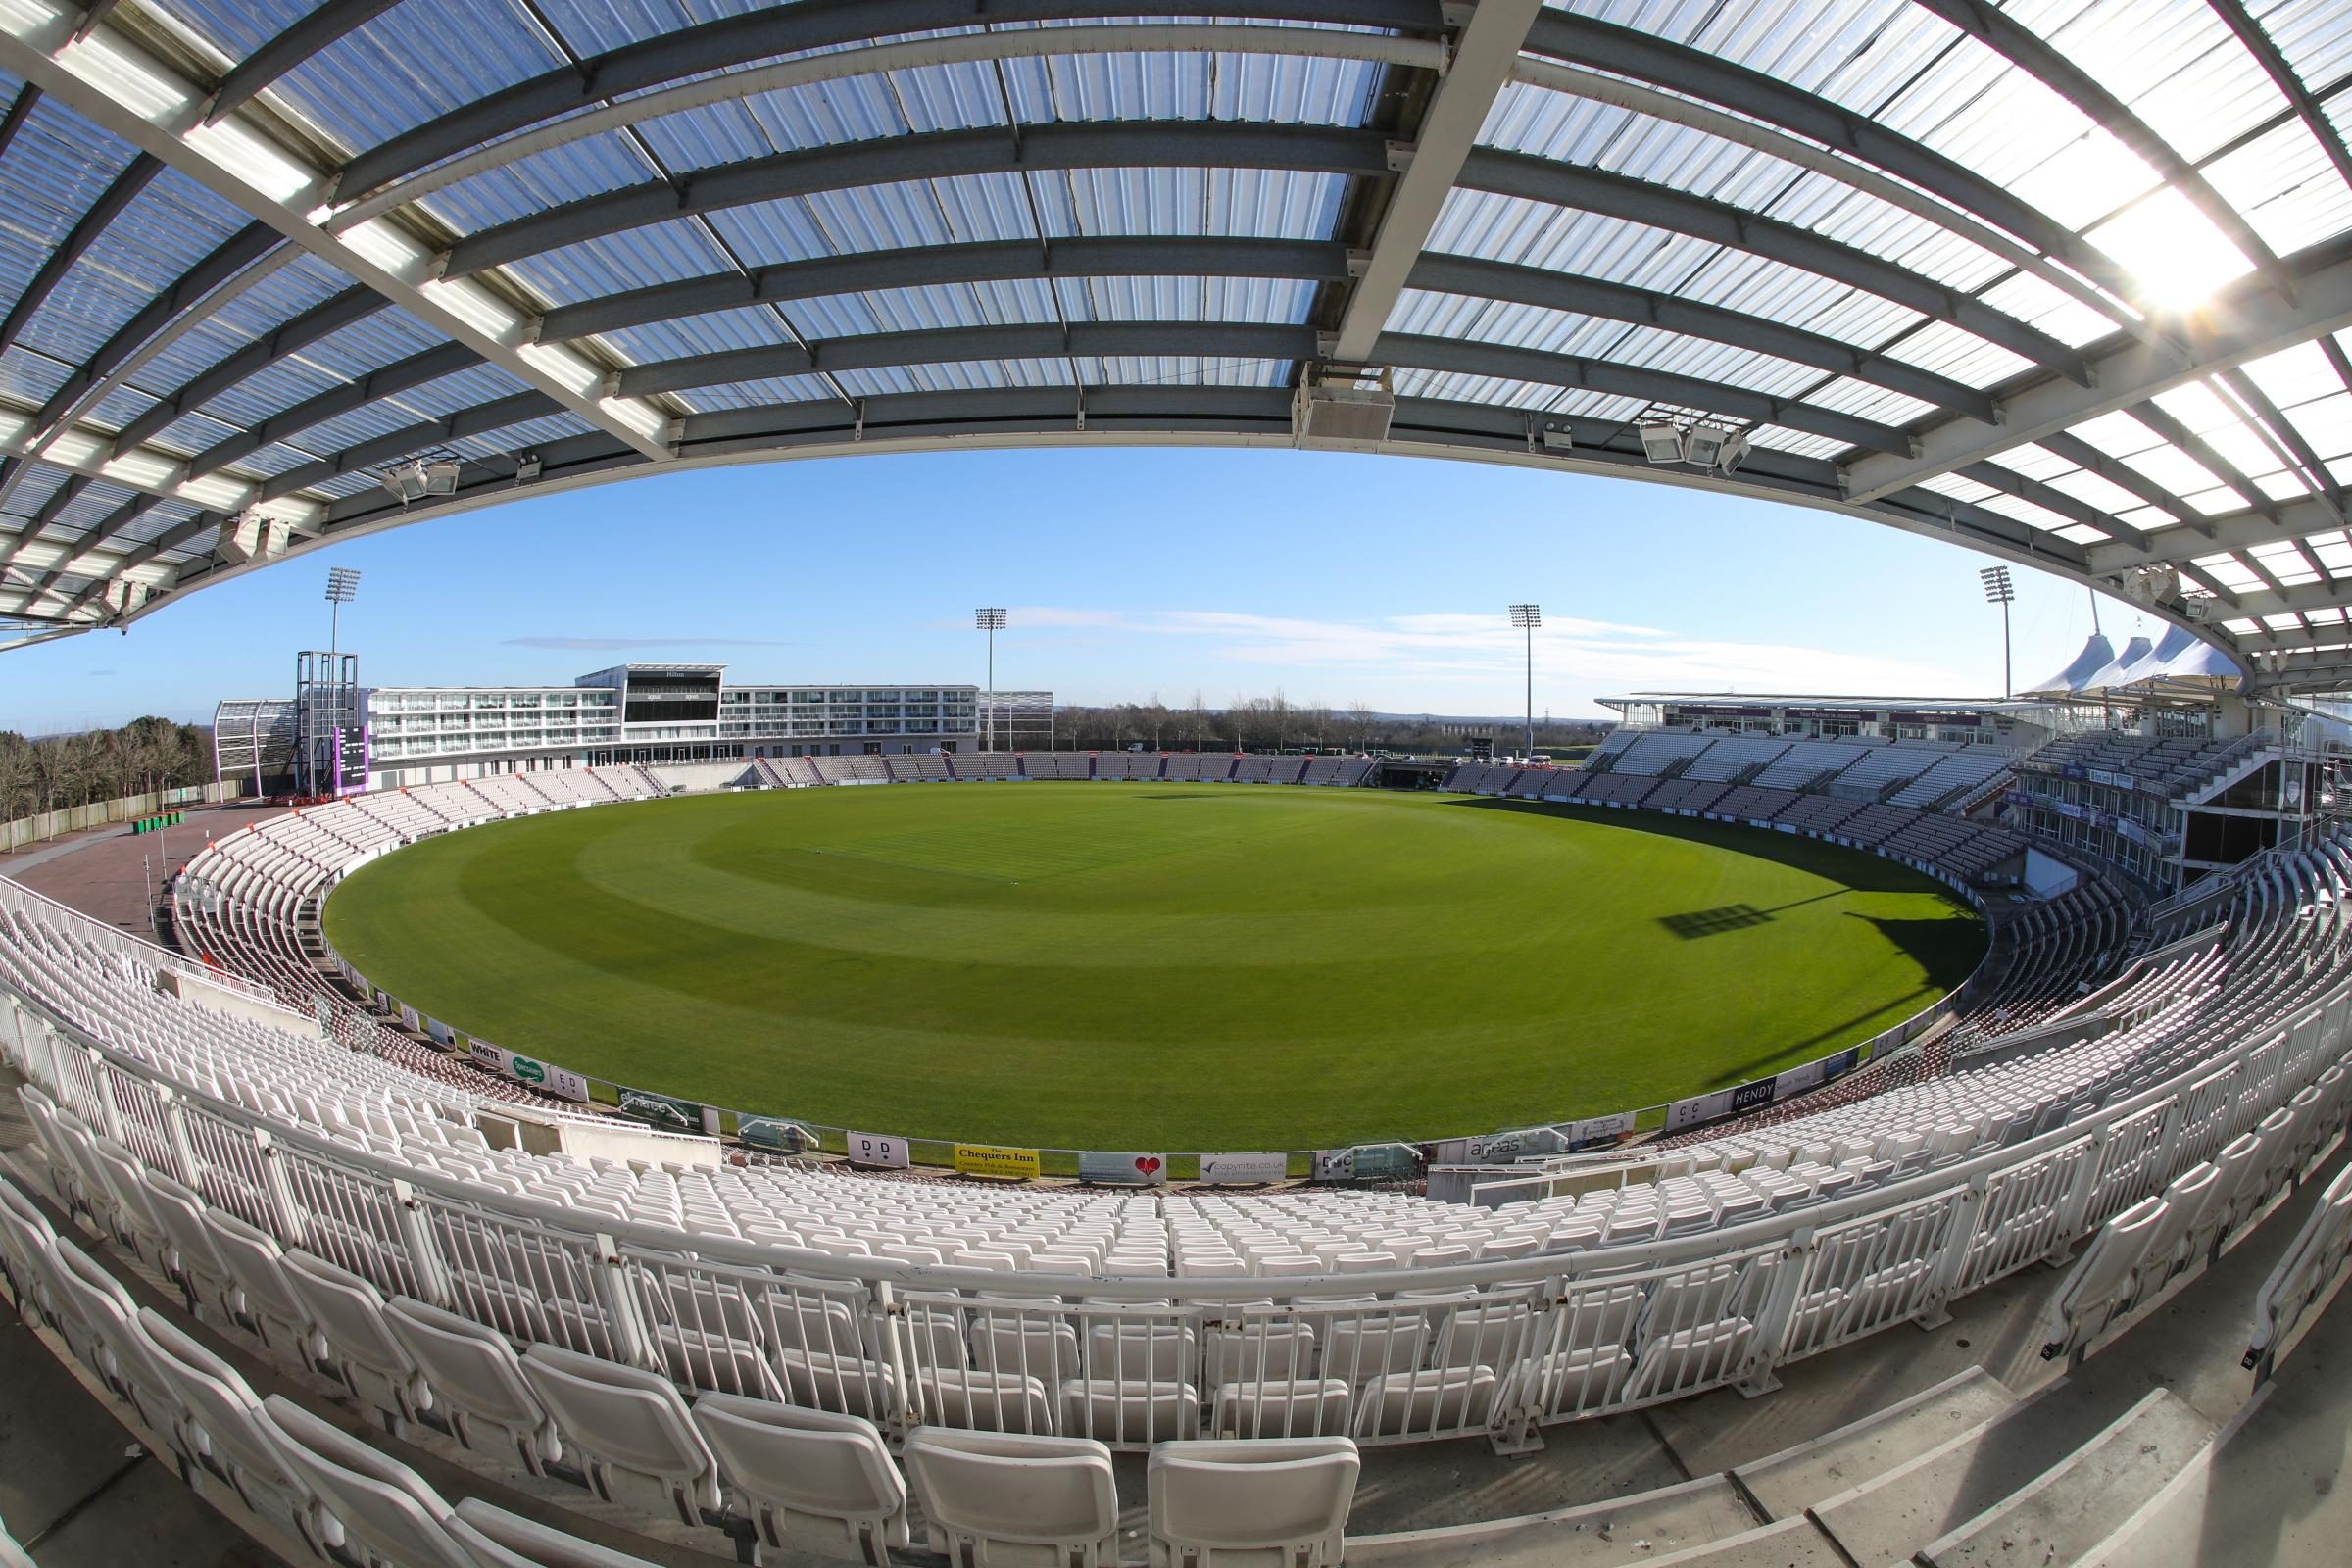 Ageas Bowl will not host Ashes